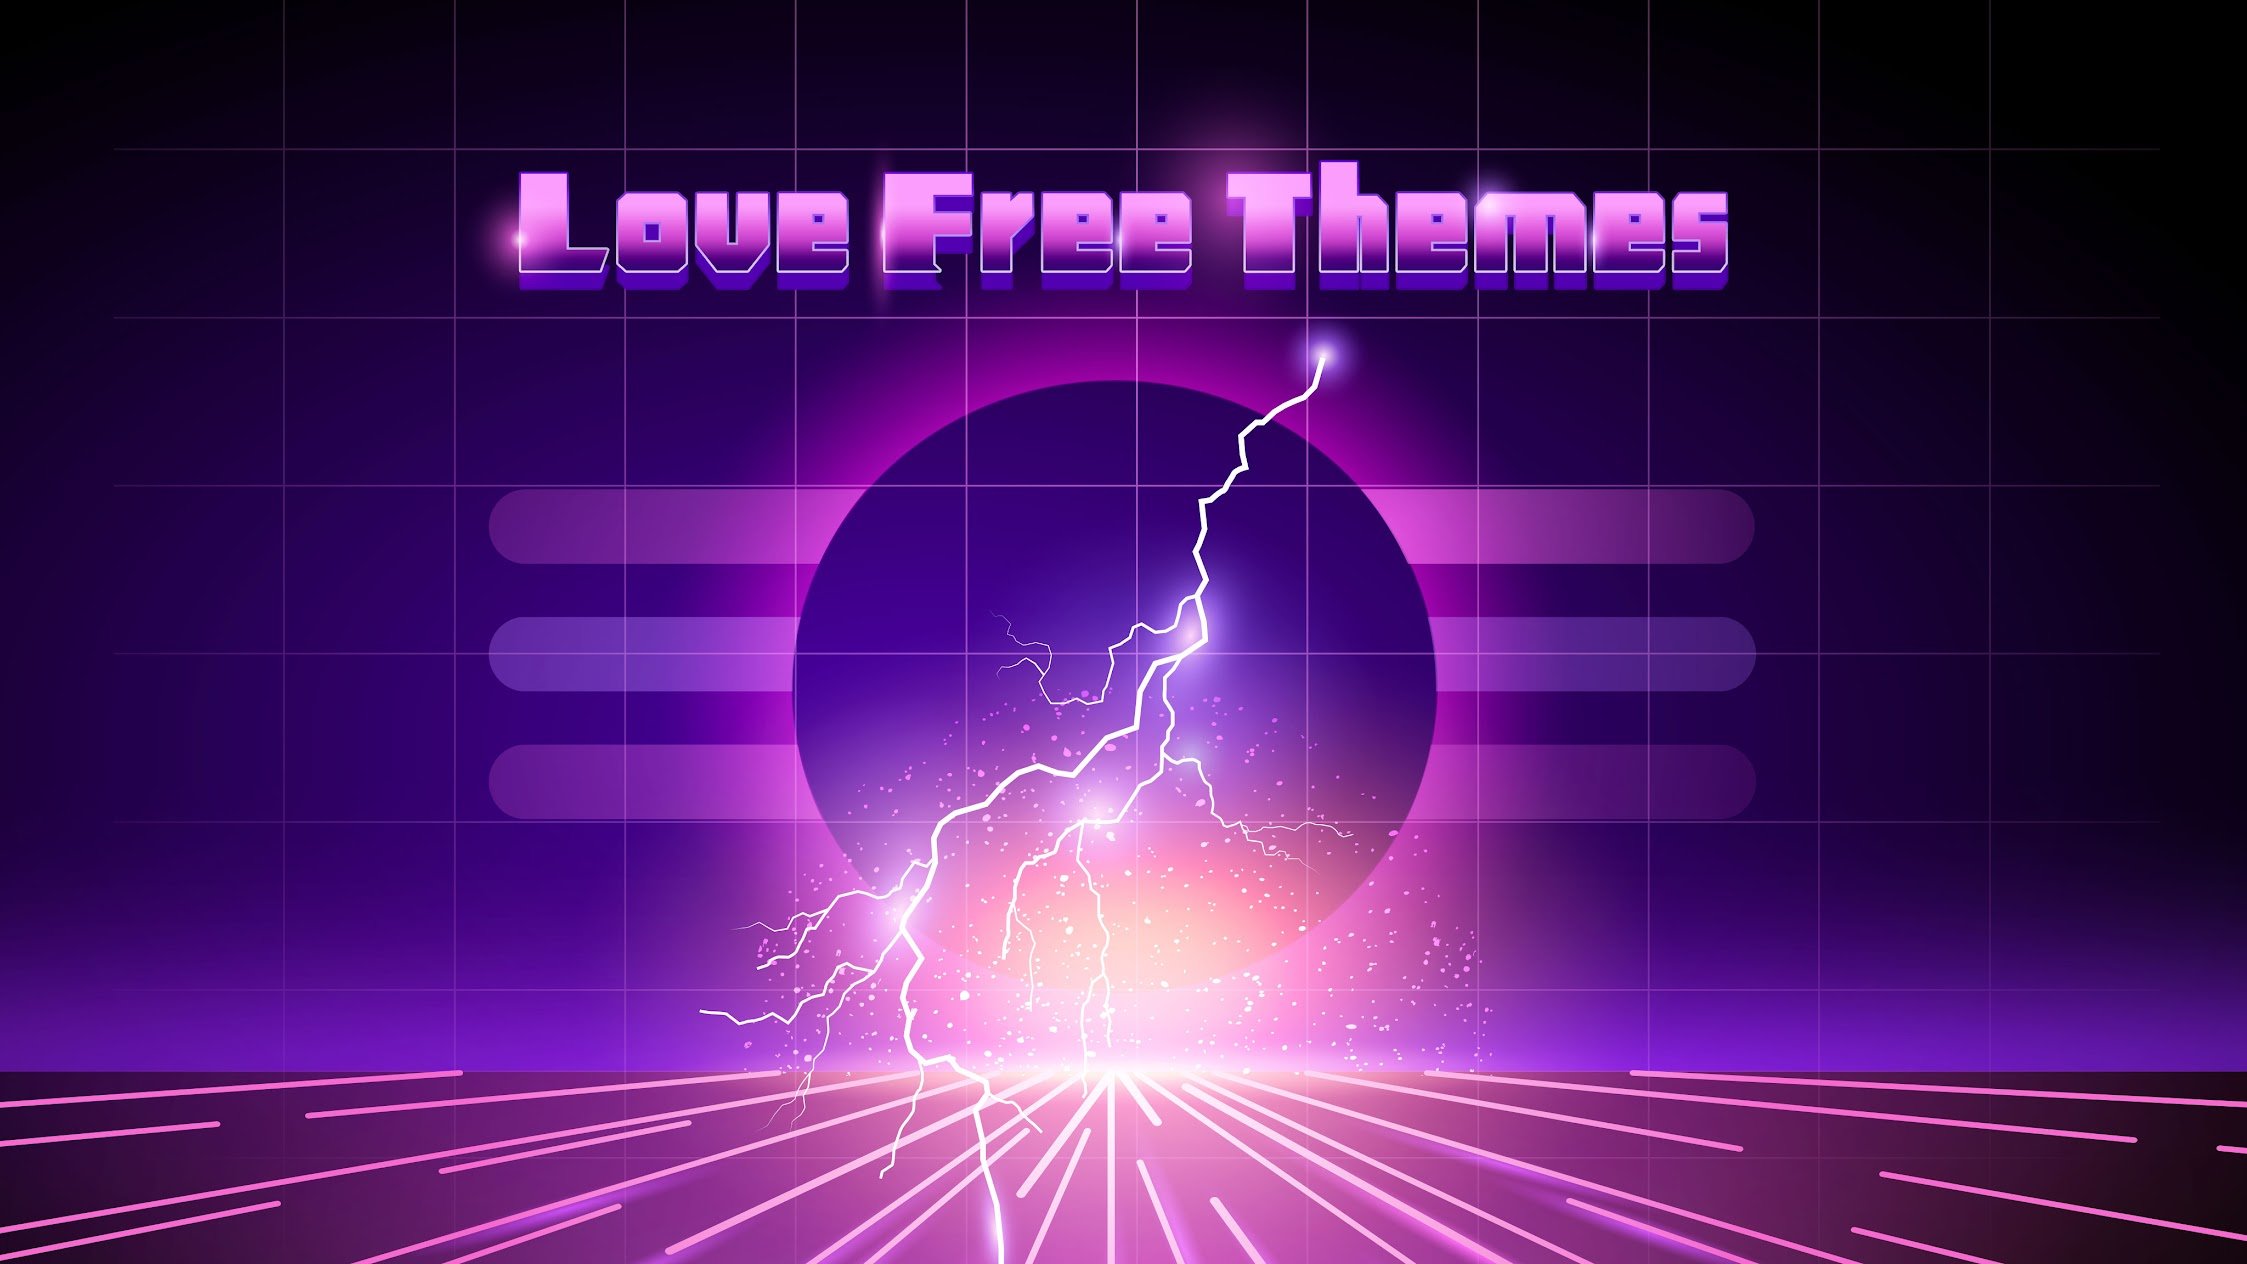 Love Free Themes